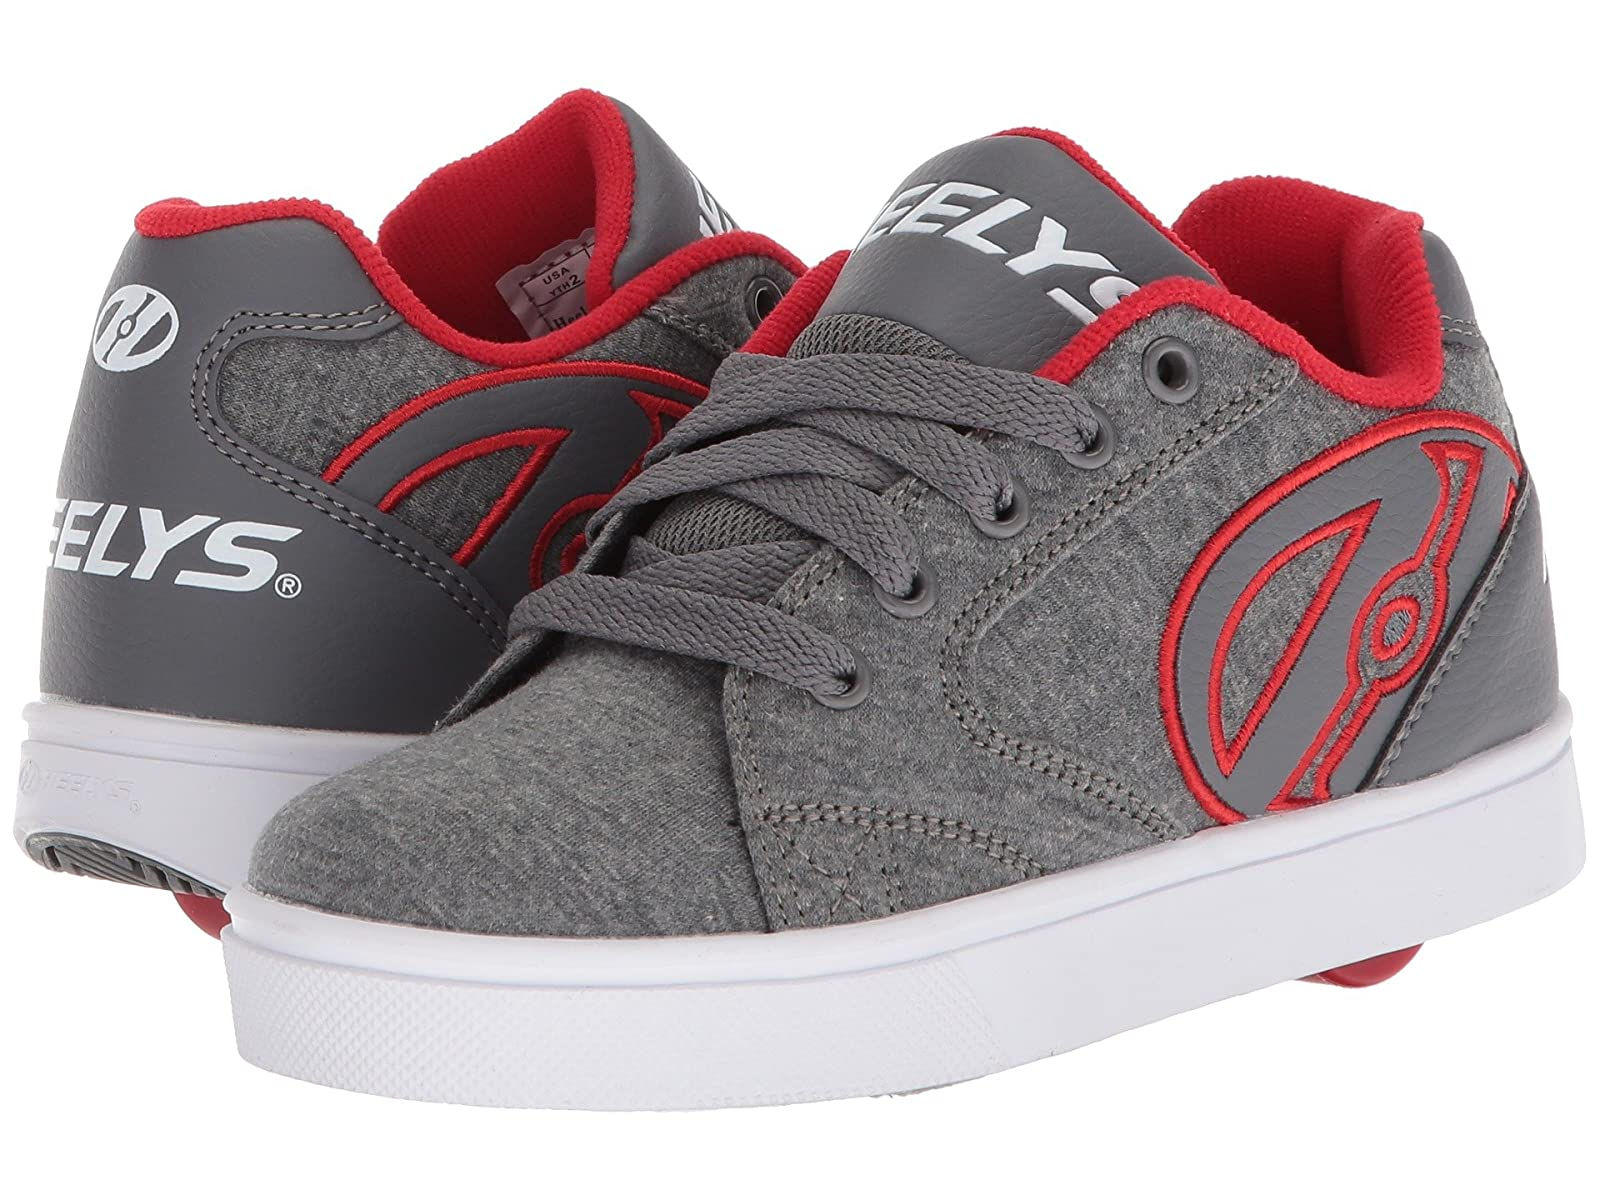 Heelys Vopel (Little Kid/Big Kid/Adult)Atmospheric grades have affordable shoes